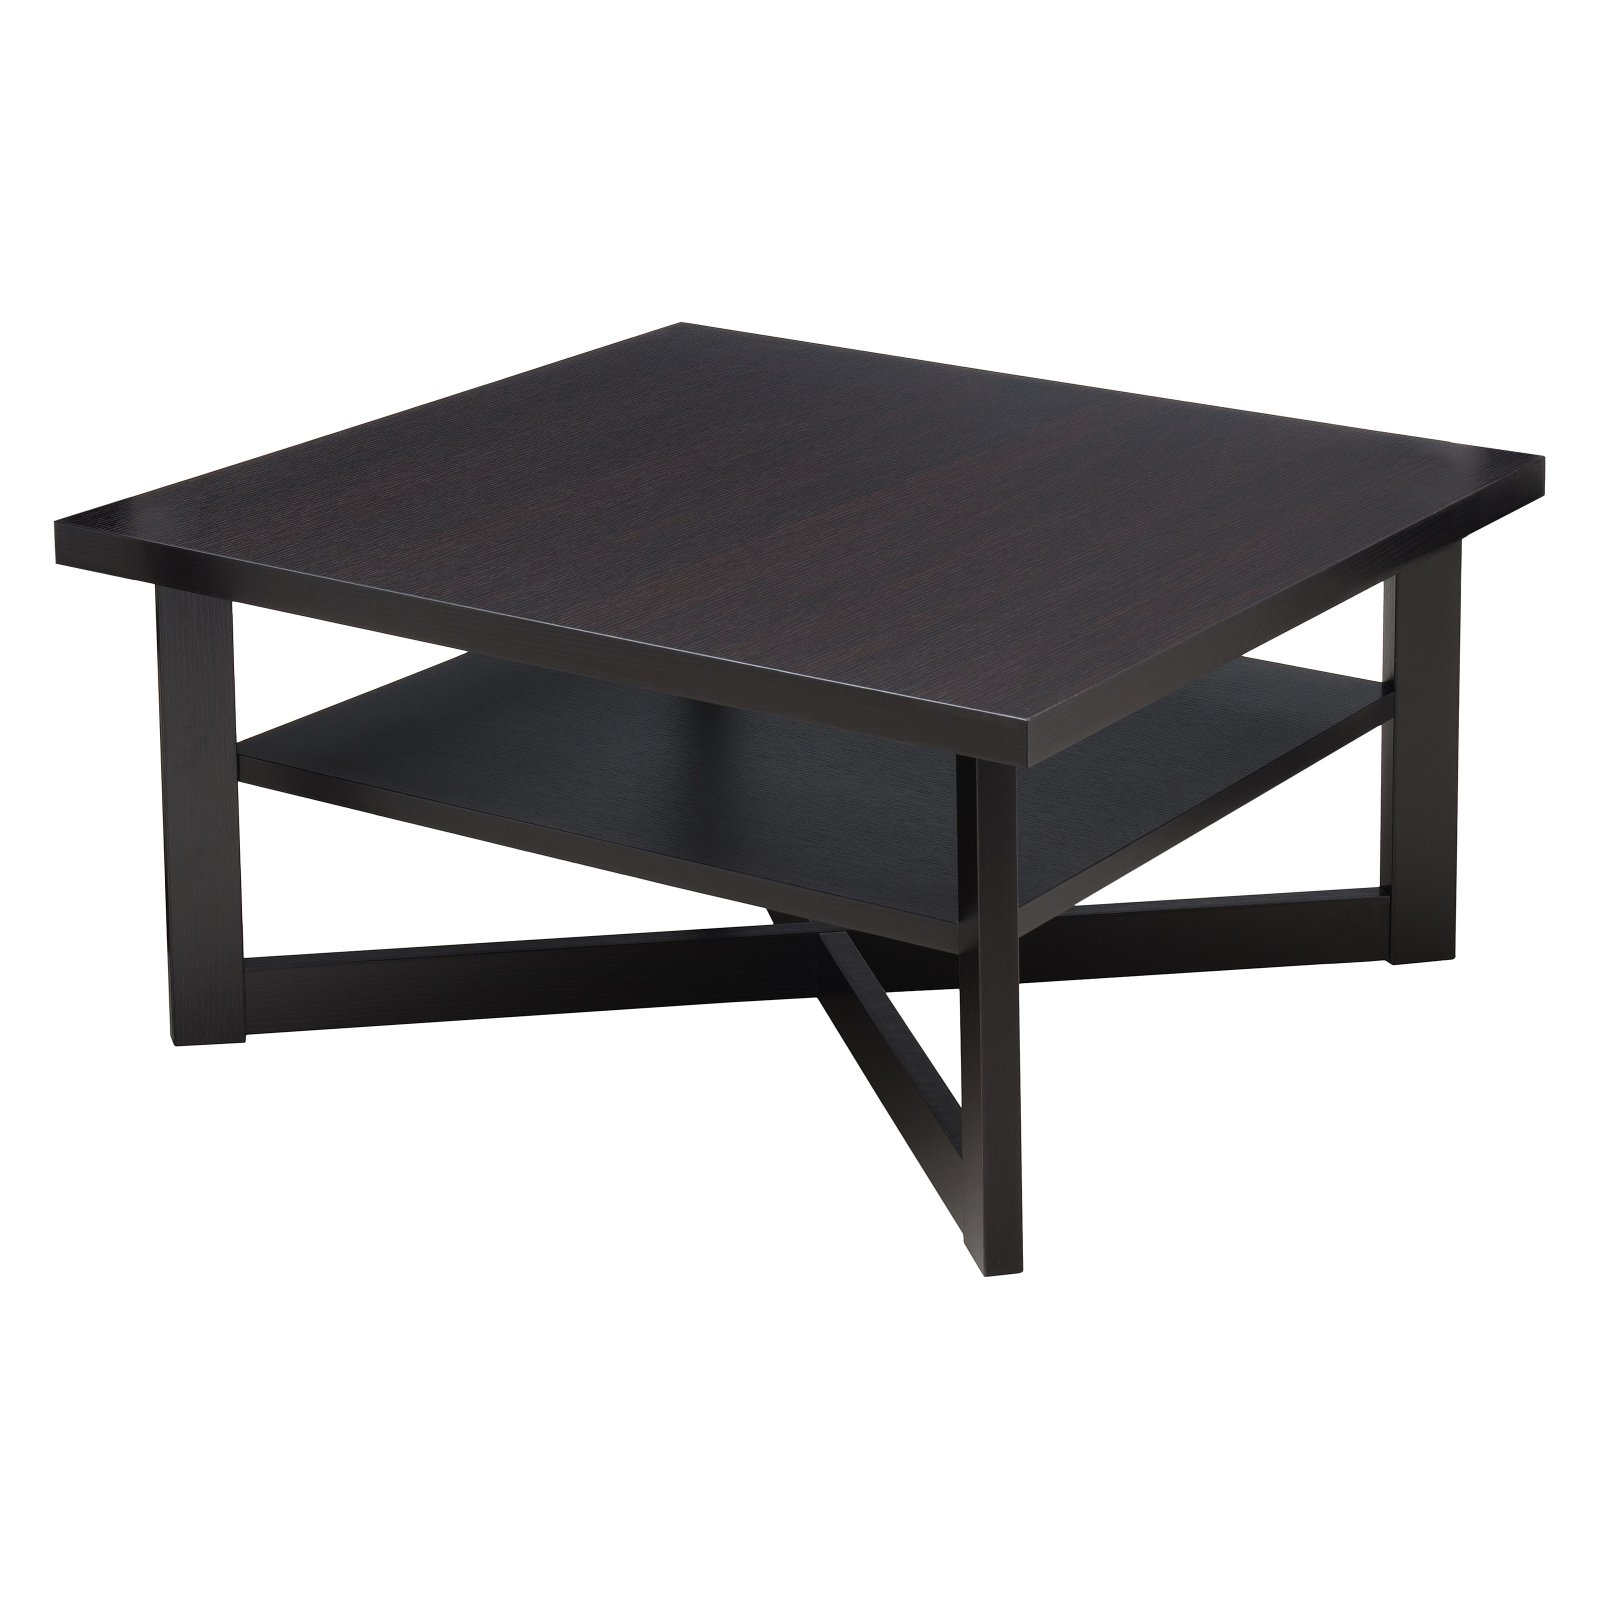 United Furniture 36 in. Square Cocktail Table by United Furniture Industries